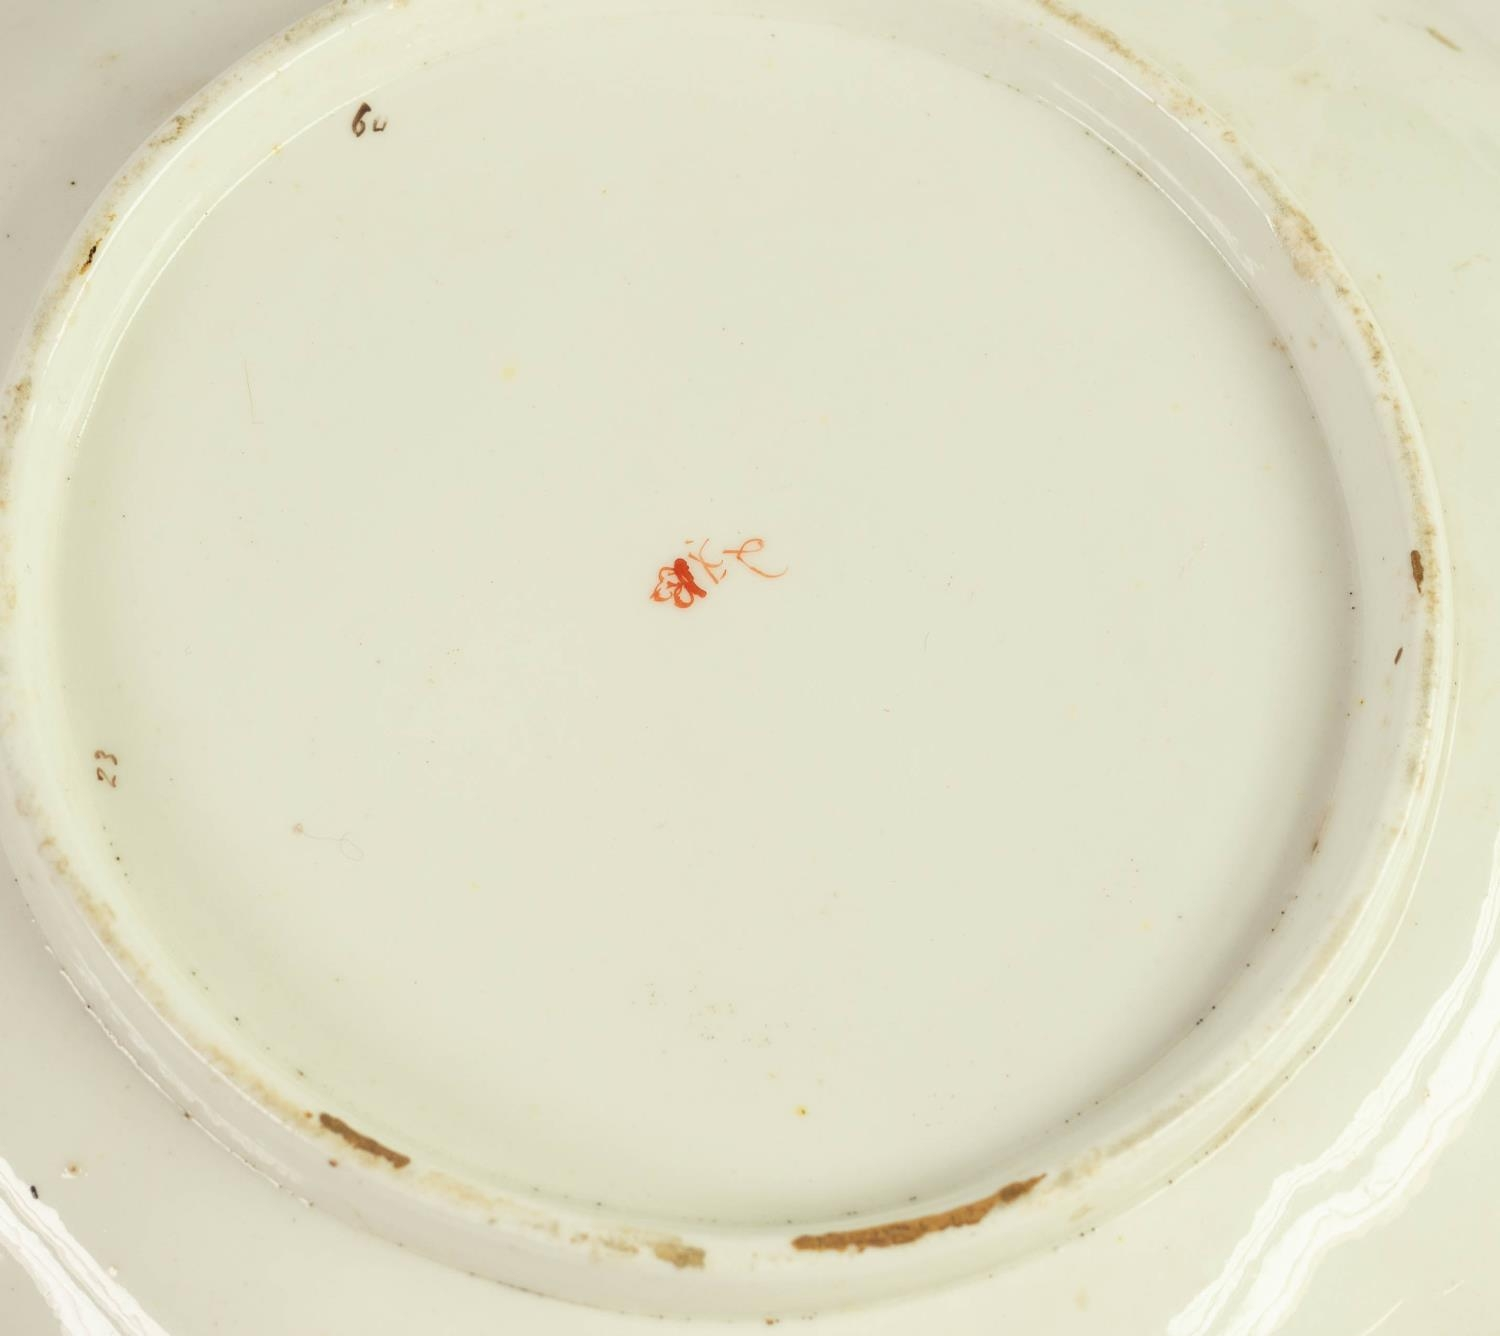 PAIR OF NINETEENTH CENTURY DERBY PORCELAIN DESSERT DISHES, each with lobated rim and floral - Image 2 of 3